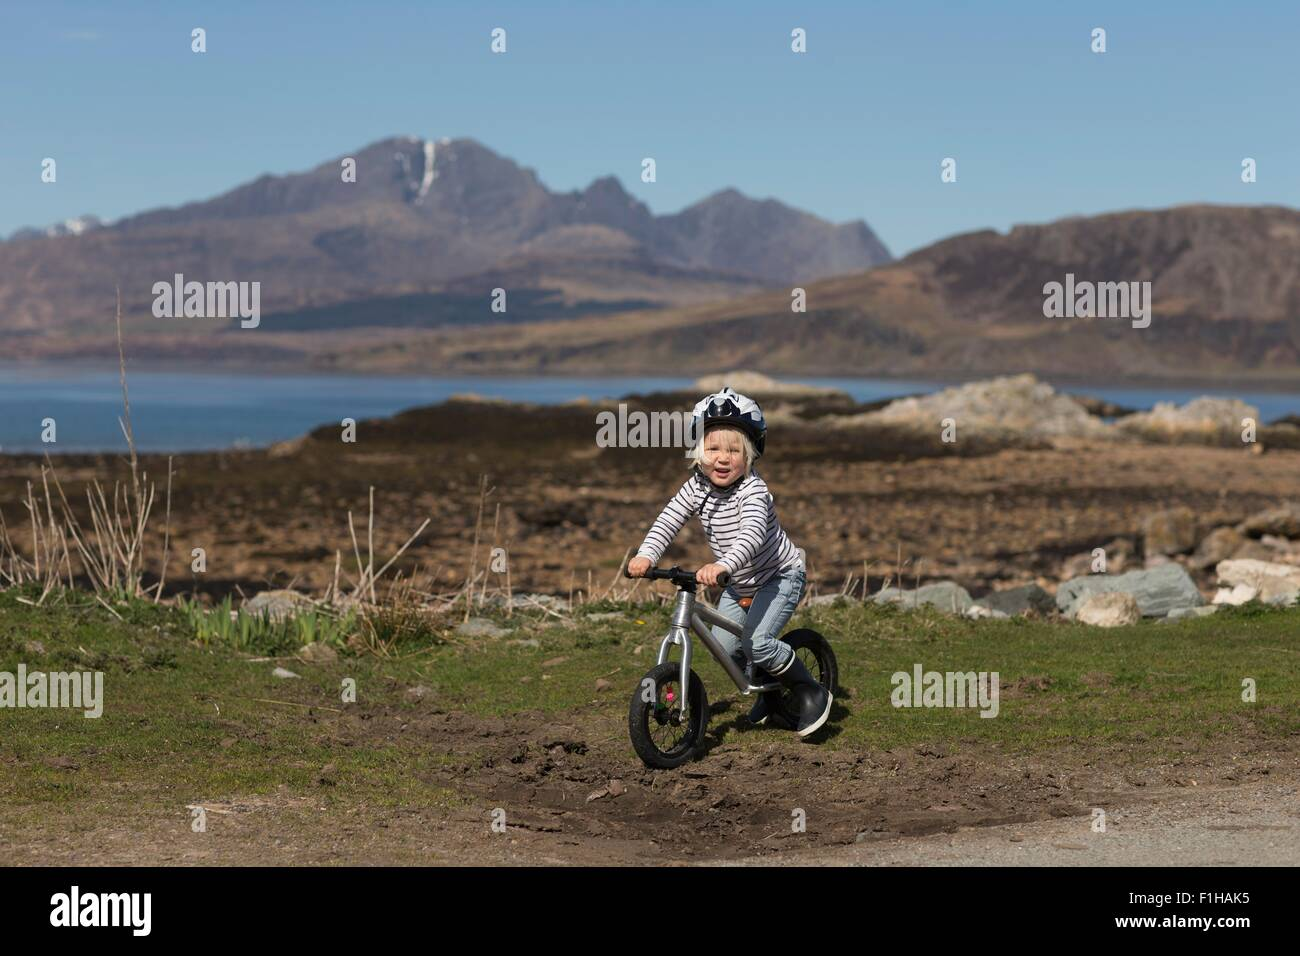 Boy riding bike, Lake Eishort, Isle of Skye, Hebrides, Scotland - Stock Image